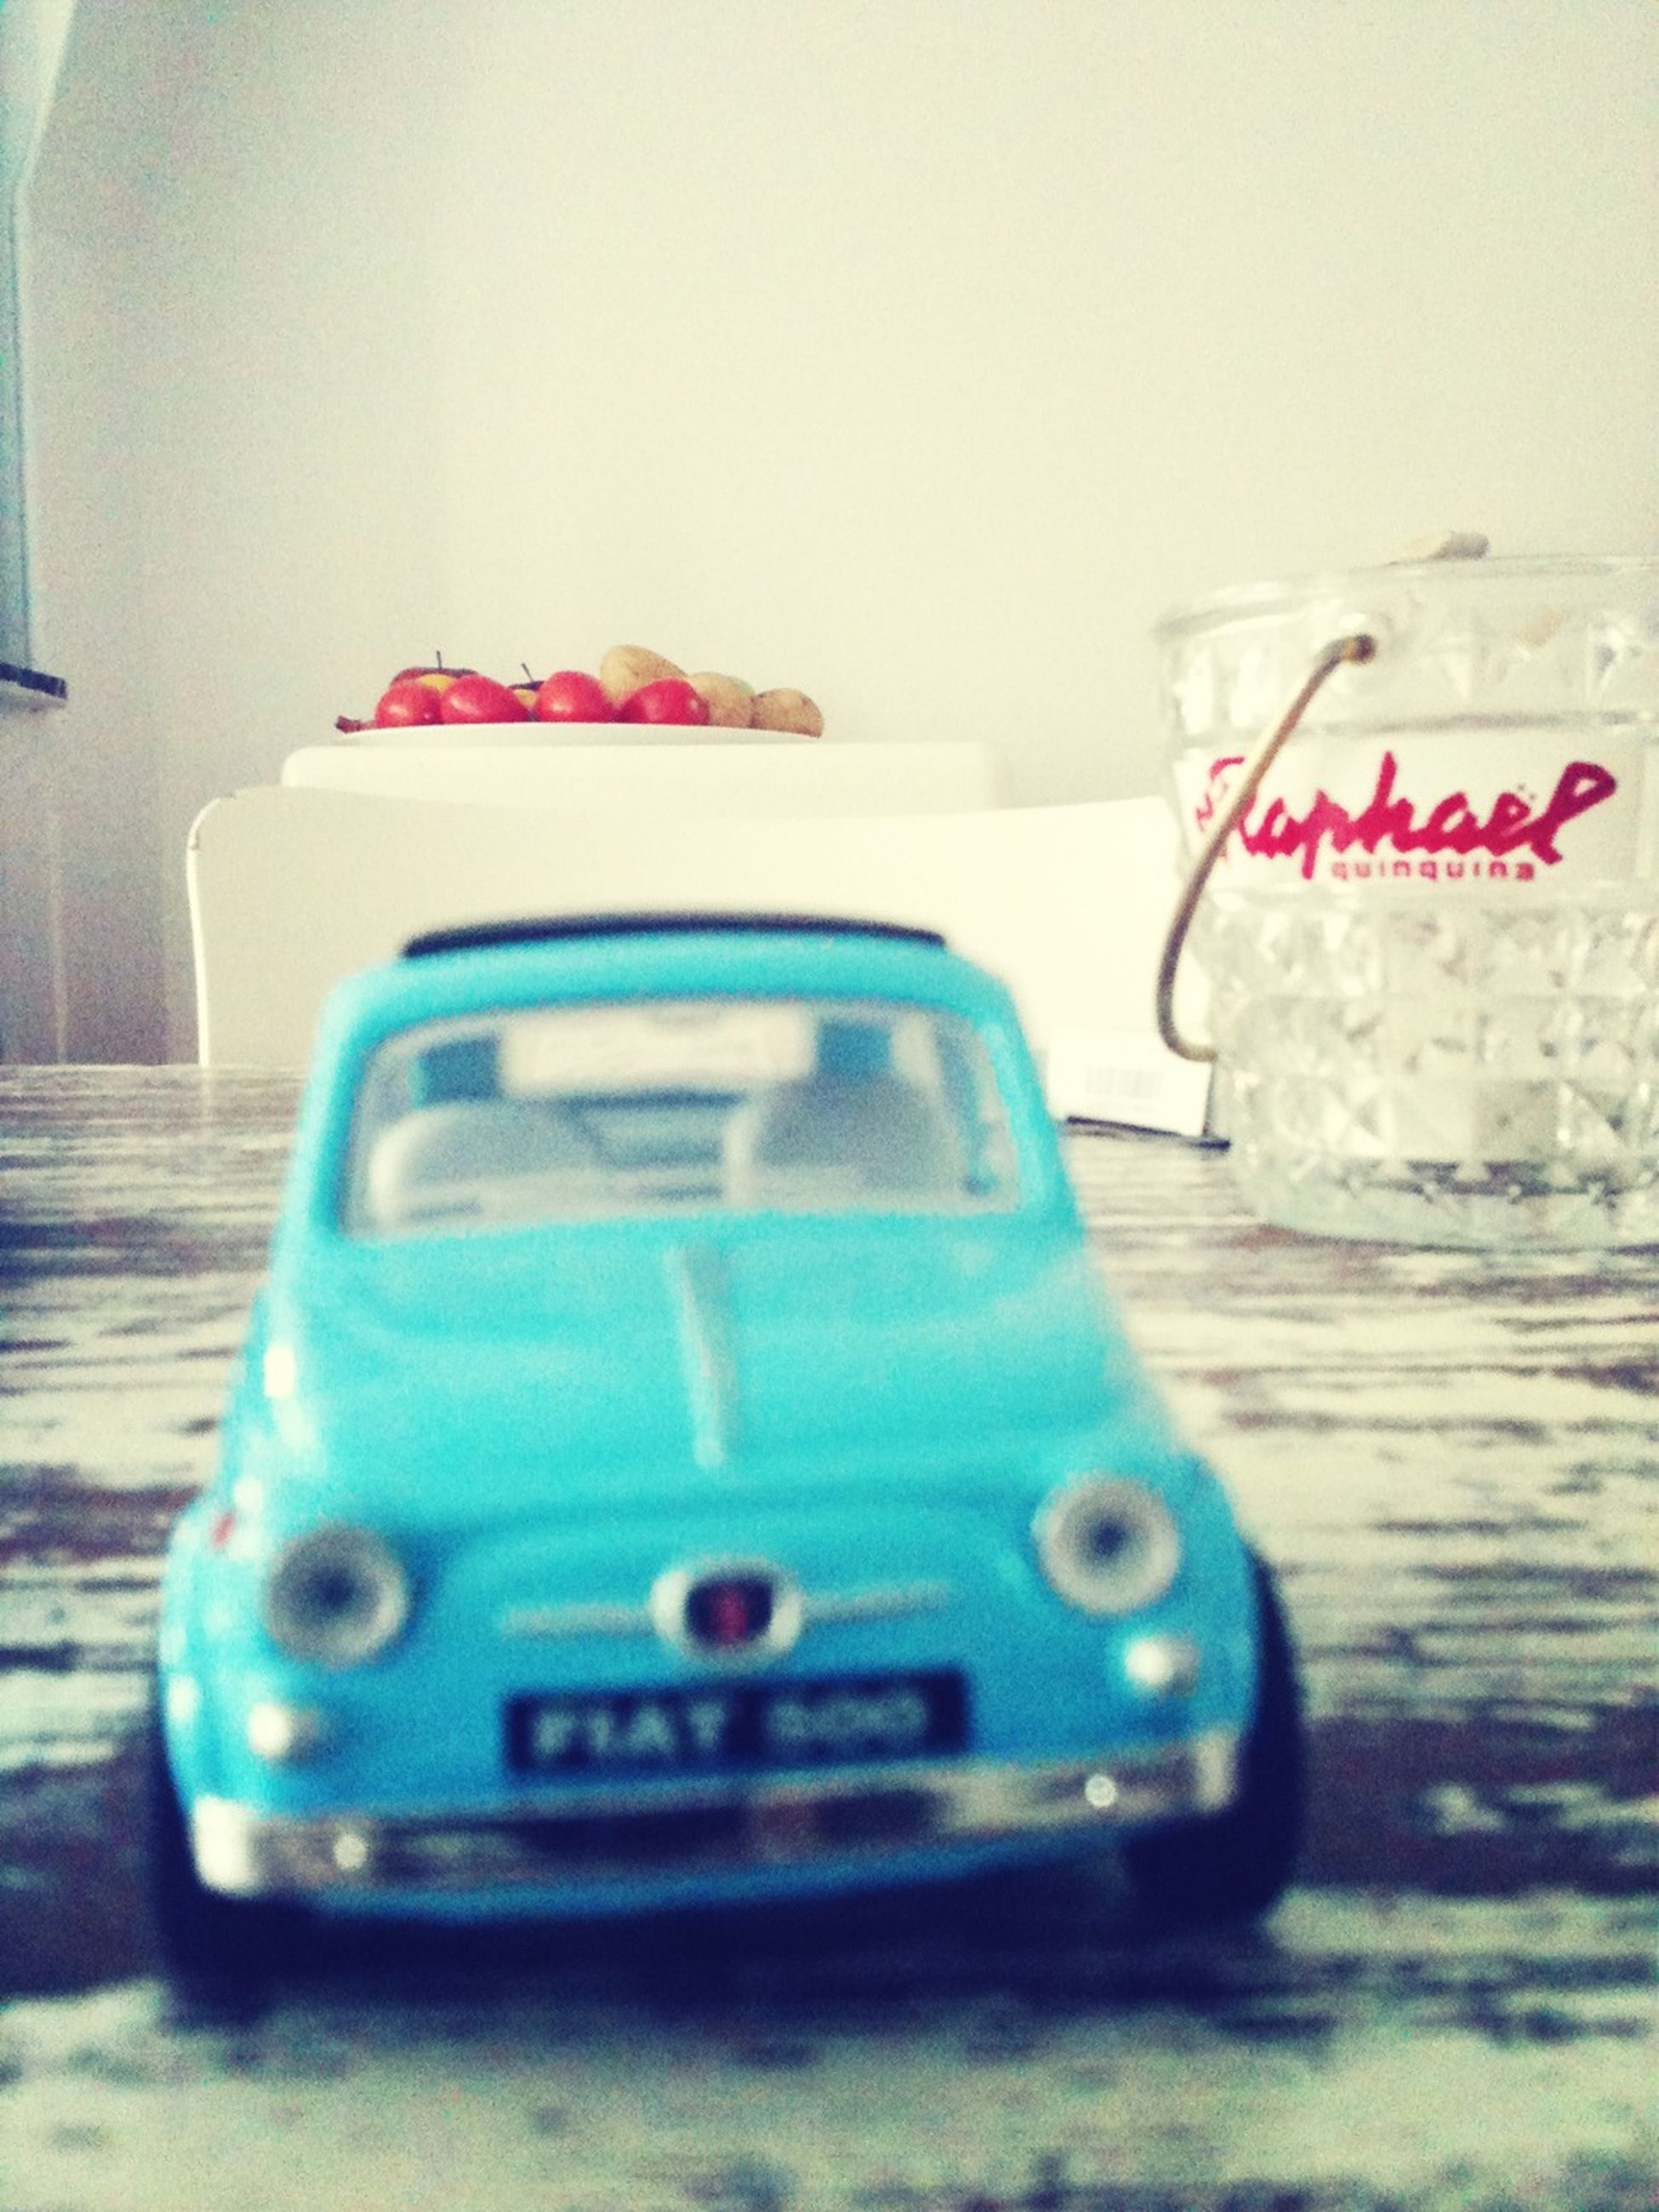 indoors, close-up, still life, table, selective focus, focus on foreground, communication, car, single object, no people, text, technology, toy, day, plastic, western script, open, land vehicle, transportation, pen